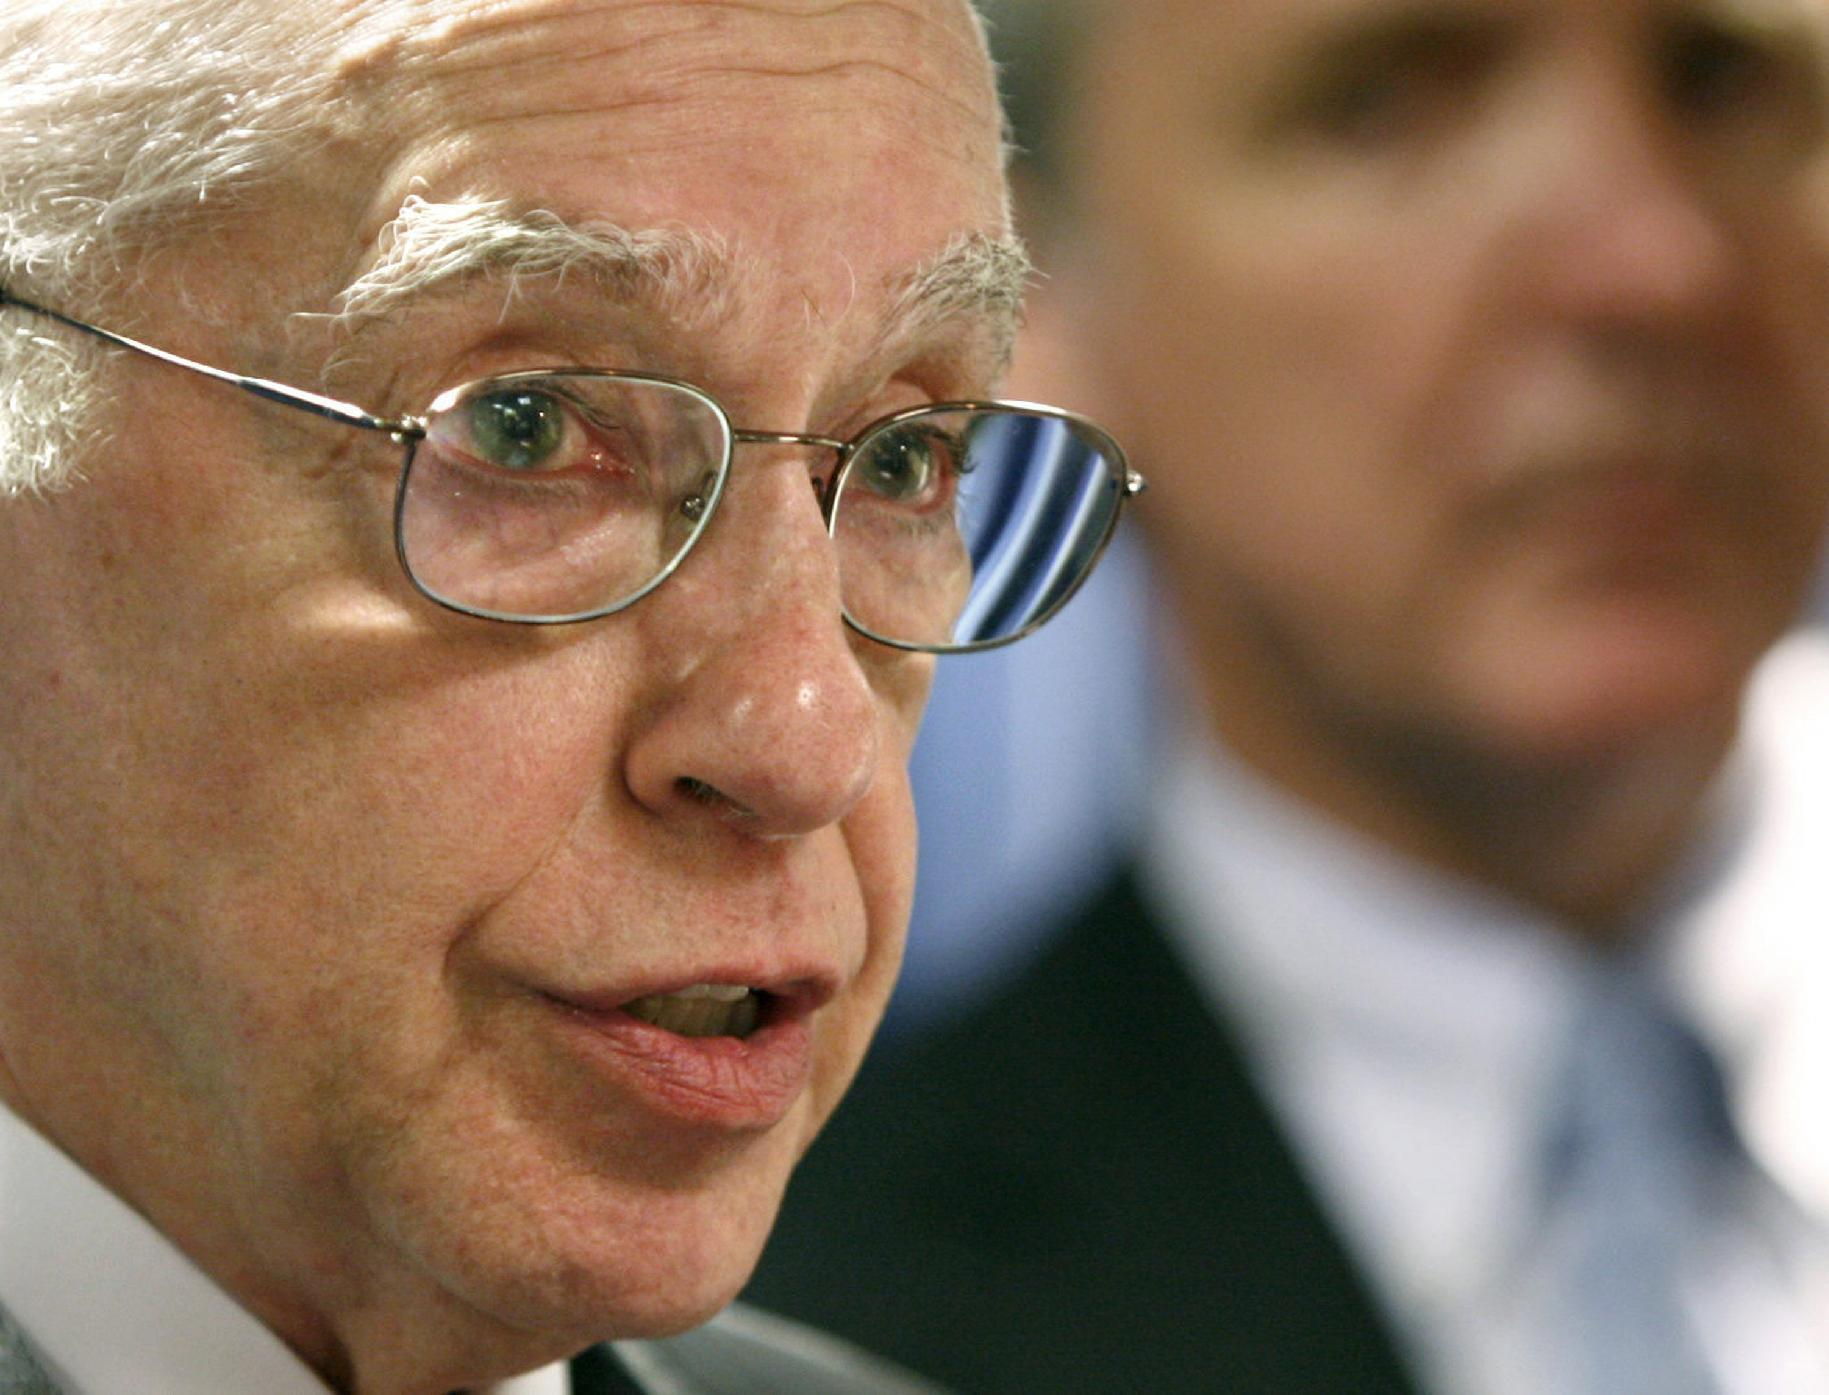 FILE - In this Aug. 5, 2008, file photo, then-Attorney General Michael Mukasey, left, speaks in Boston. At the center of a hotly disputed Senate torture report is America's biggest counterterrorism success of all: the killing of Osama bin Laden. The still-classified, 6,200-page review concludes that waterboarding and other harsh interrogation methods provided no key evidence in the hunt for bin Laden, according to congressional aides and outside experts familiar with the investigation. The CIA still disputes that conclusion. (AP Photo/Steven Senne, File)